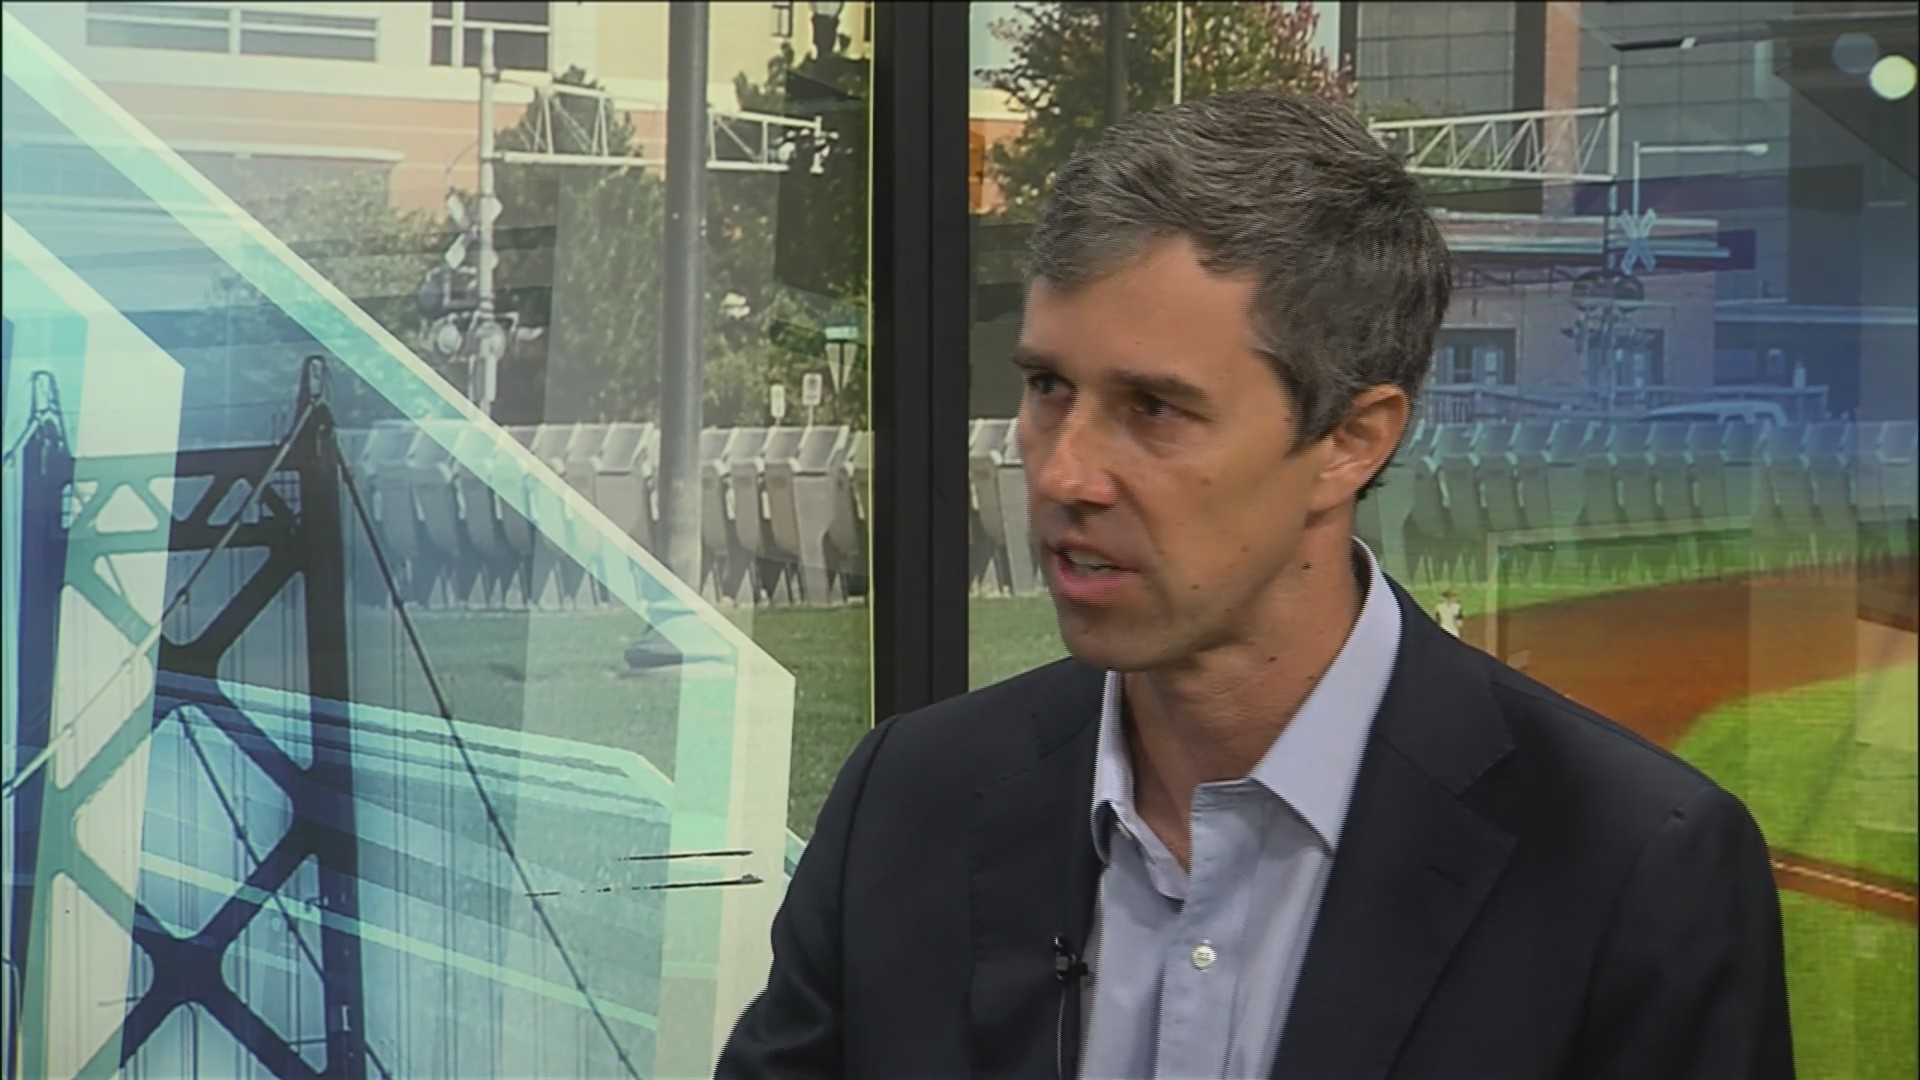 4TR Beto O'Rourke prefers public option over Medicare for All